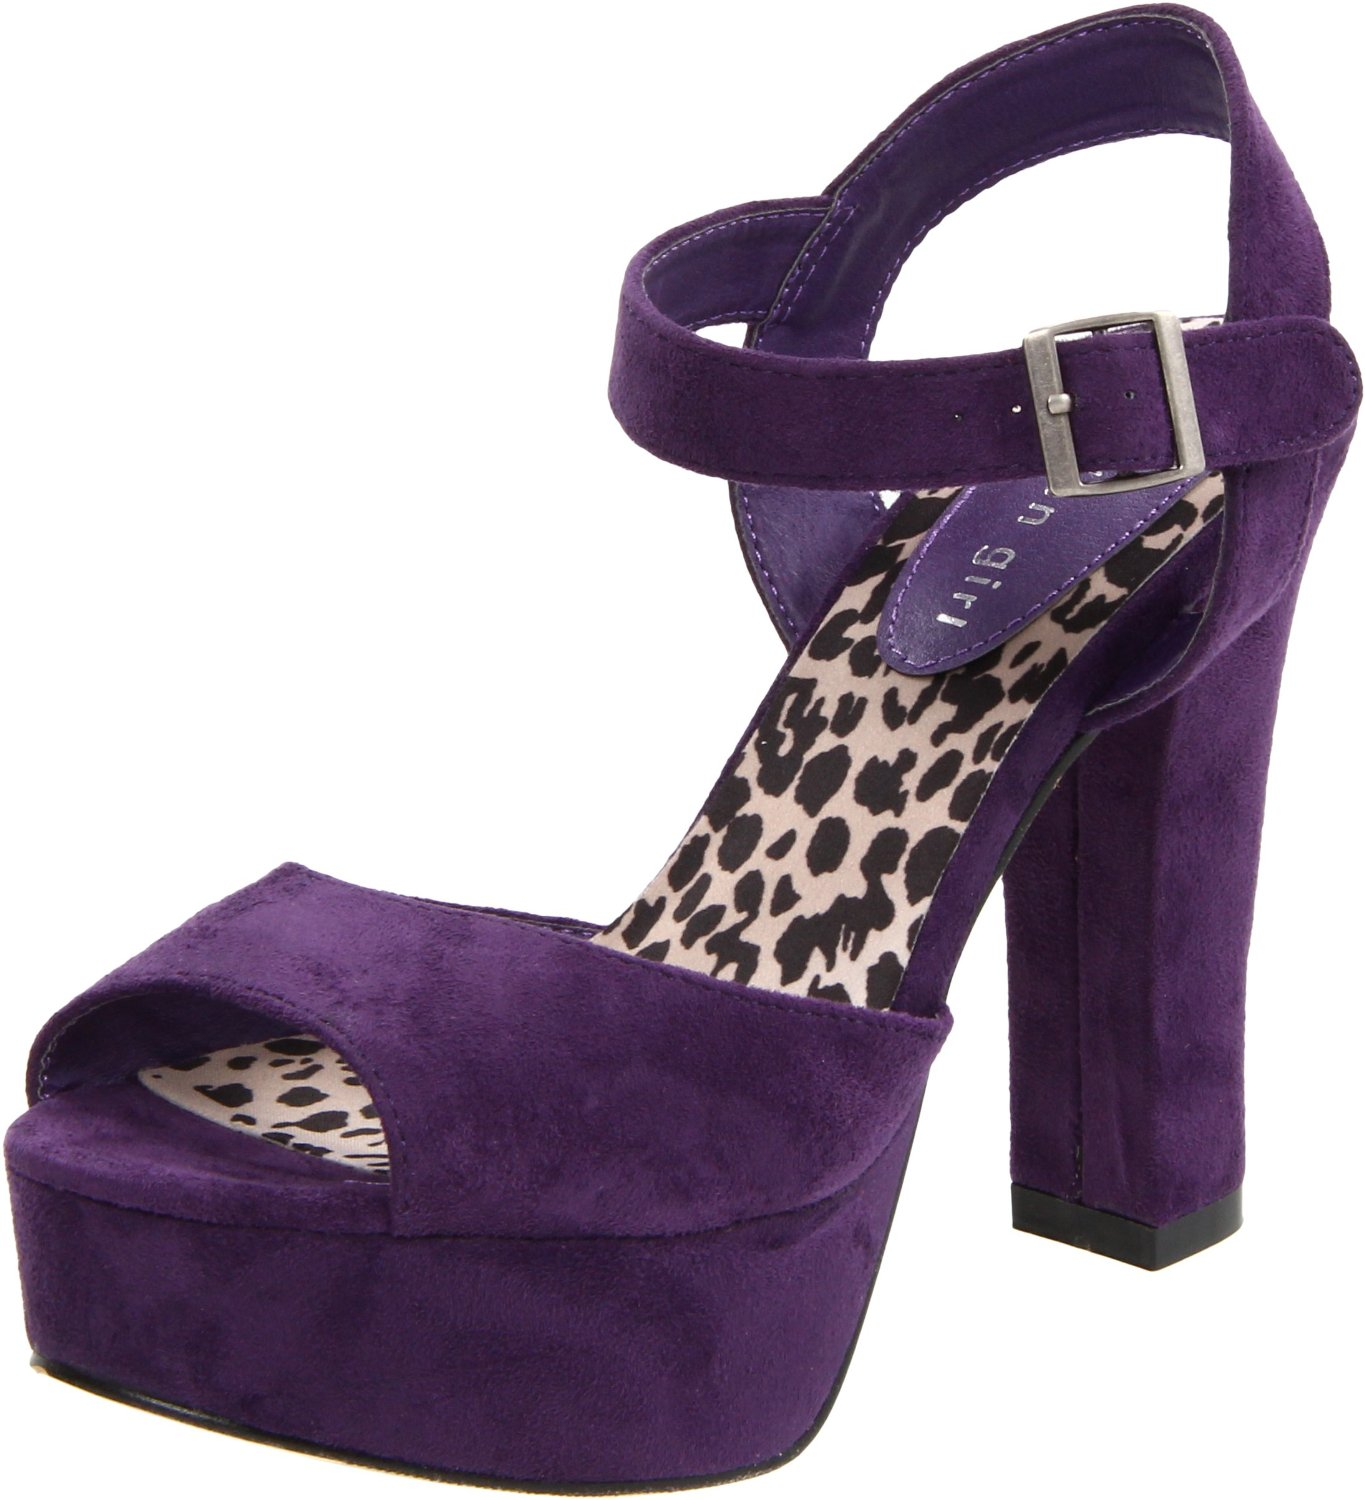 Purple vegan platform sandals – yes please!